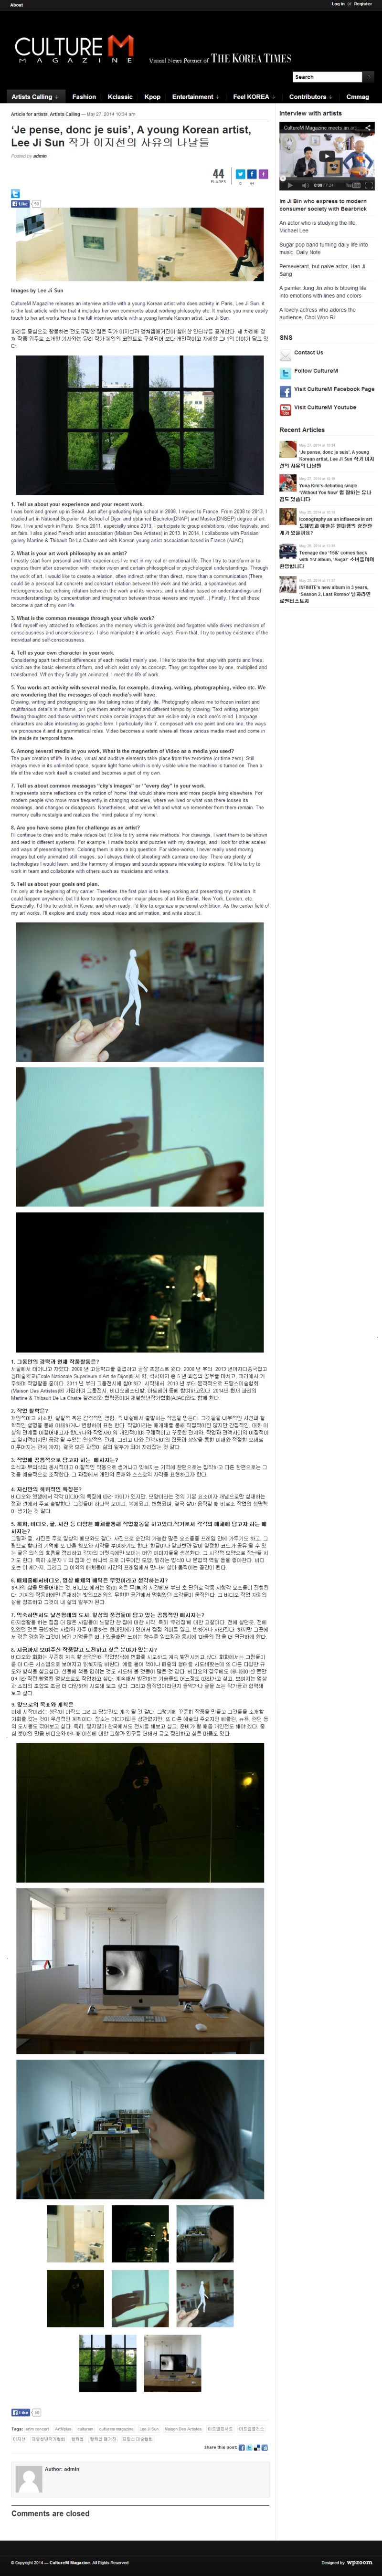 CultureM_article4_20140527